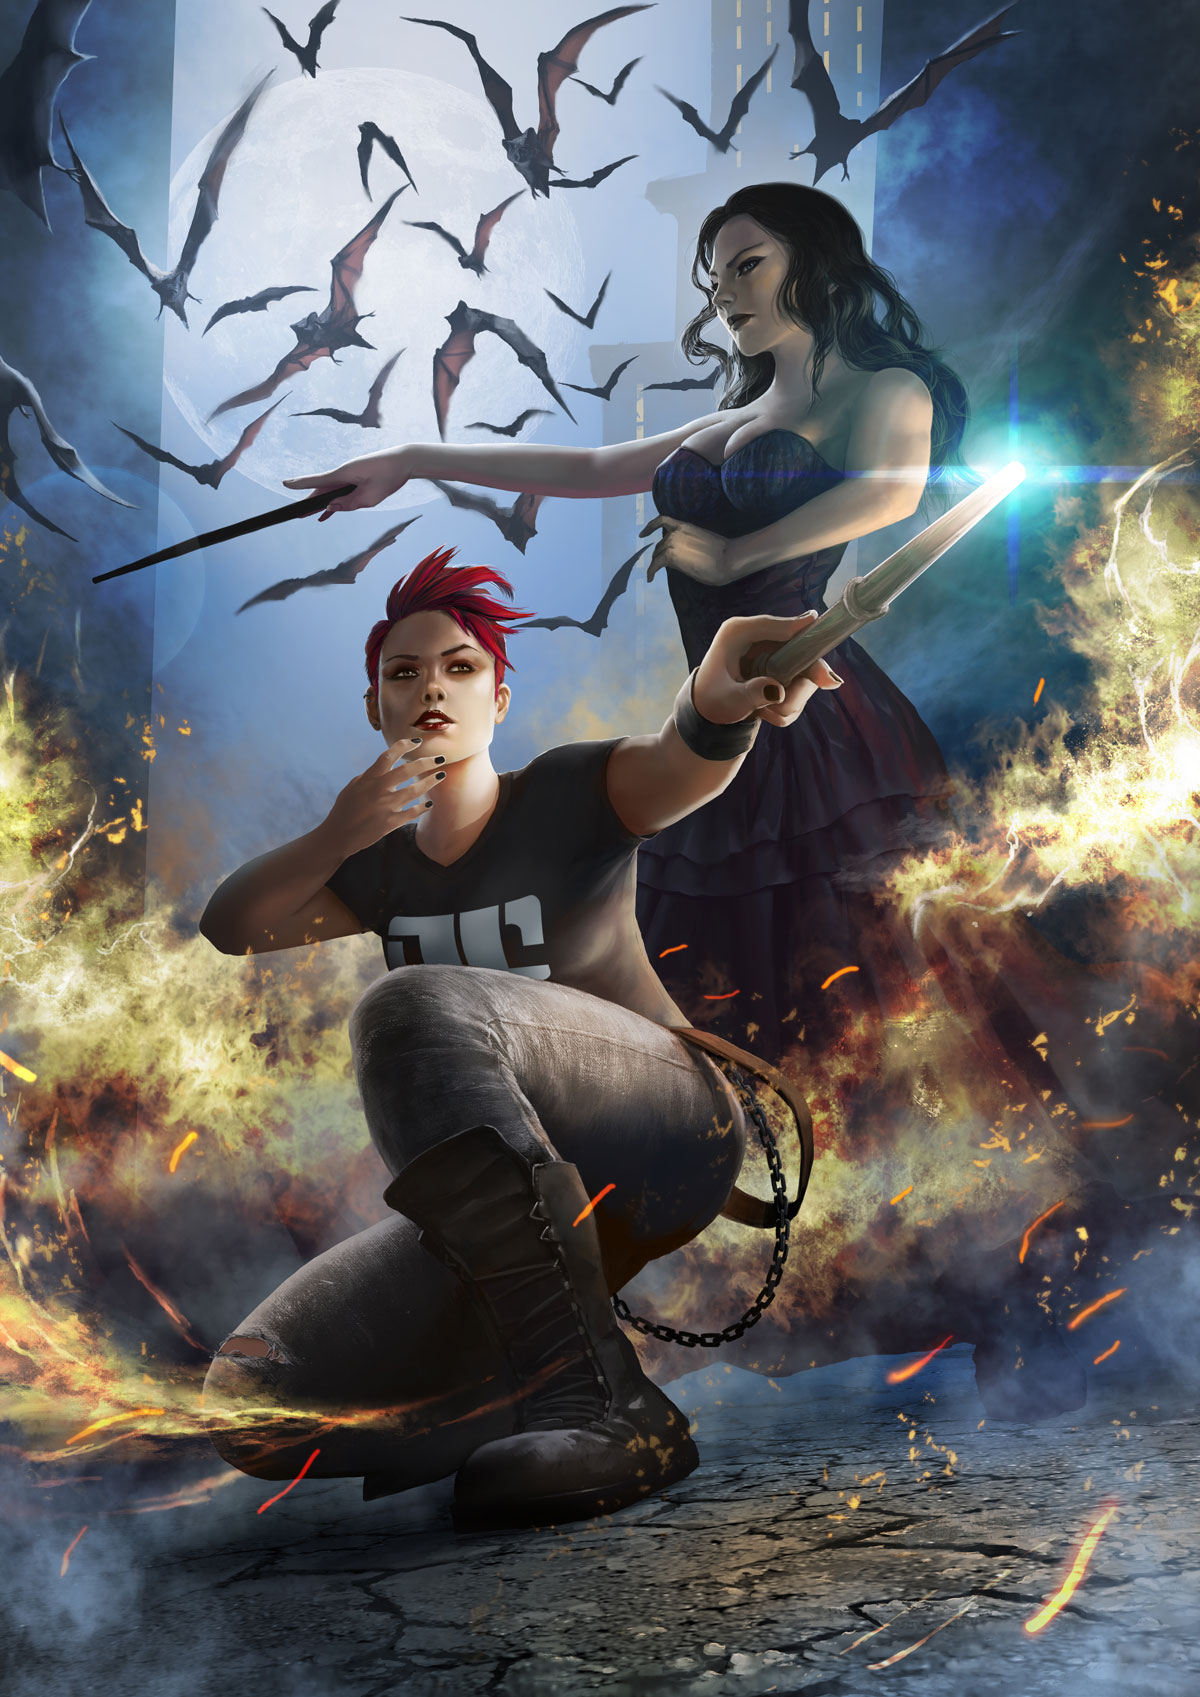 Molly and Onyx - Art Commission for Fans of Urban eBook Fantasy Good Intentions